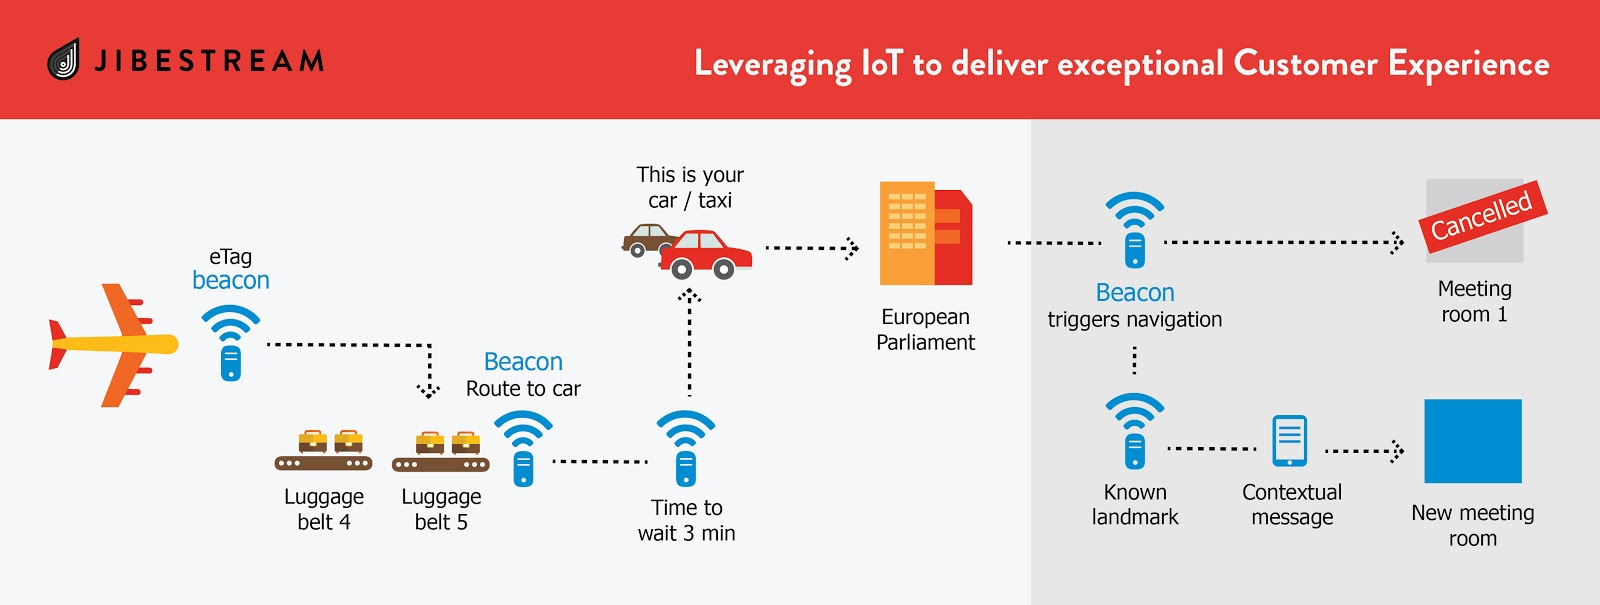 Leveraging IoT to deliver Exceptional Customer Experience